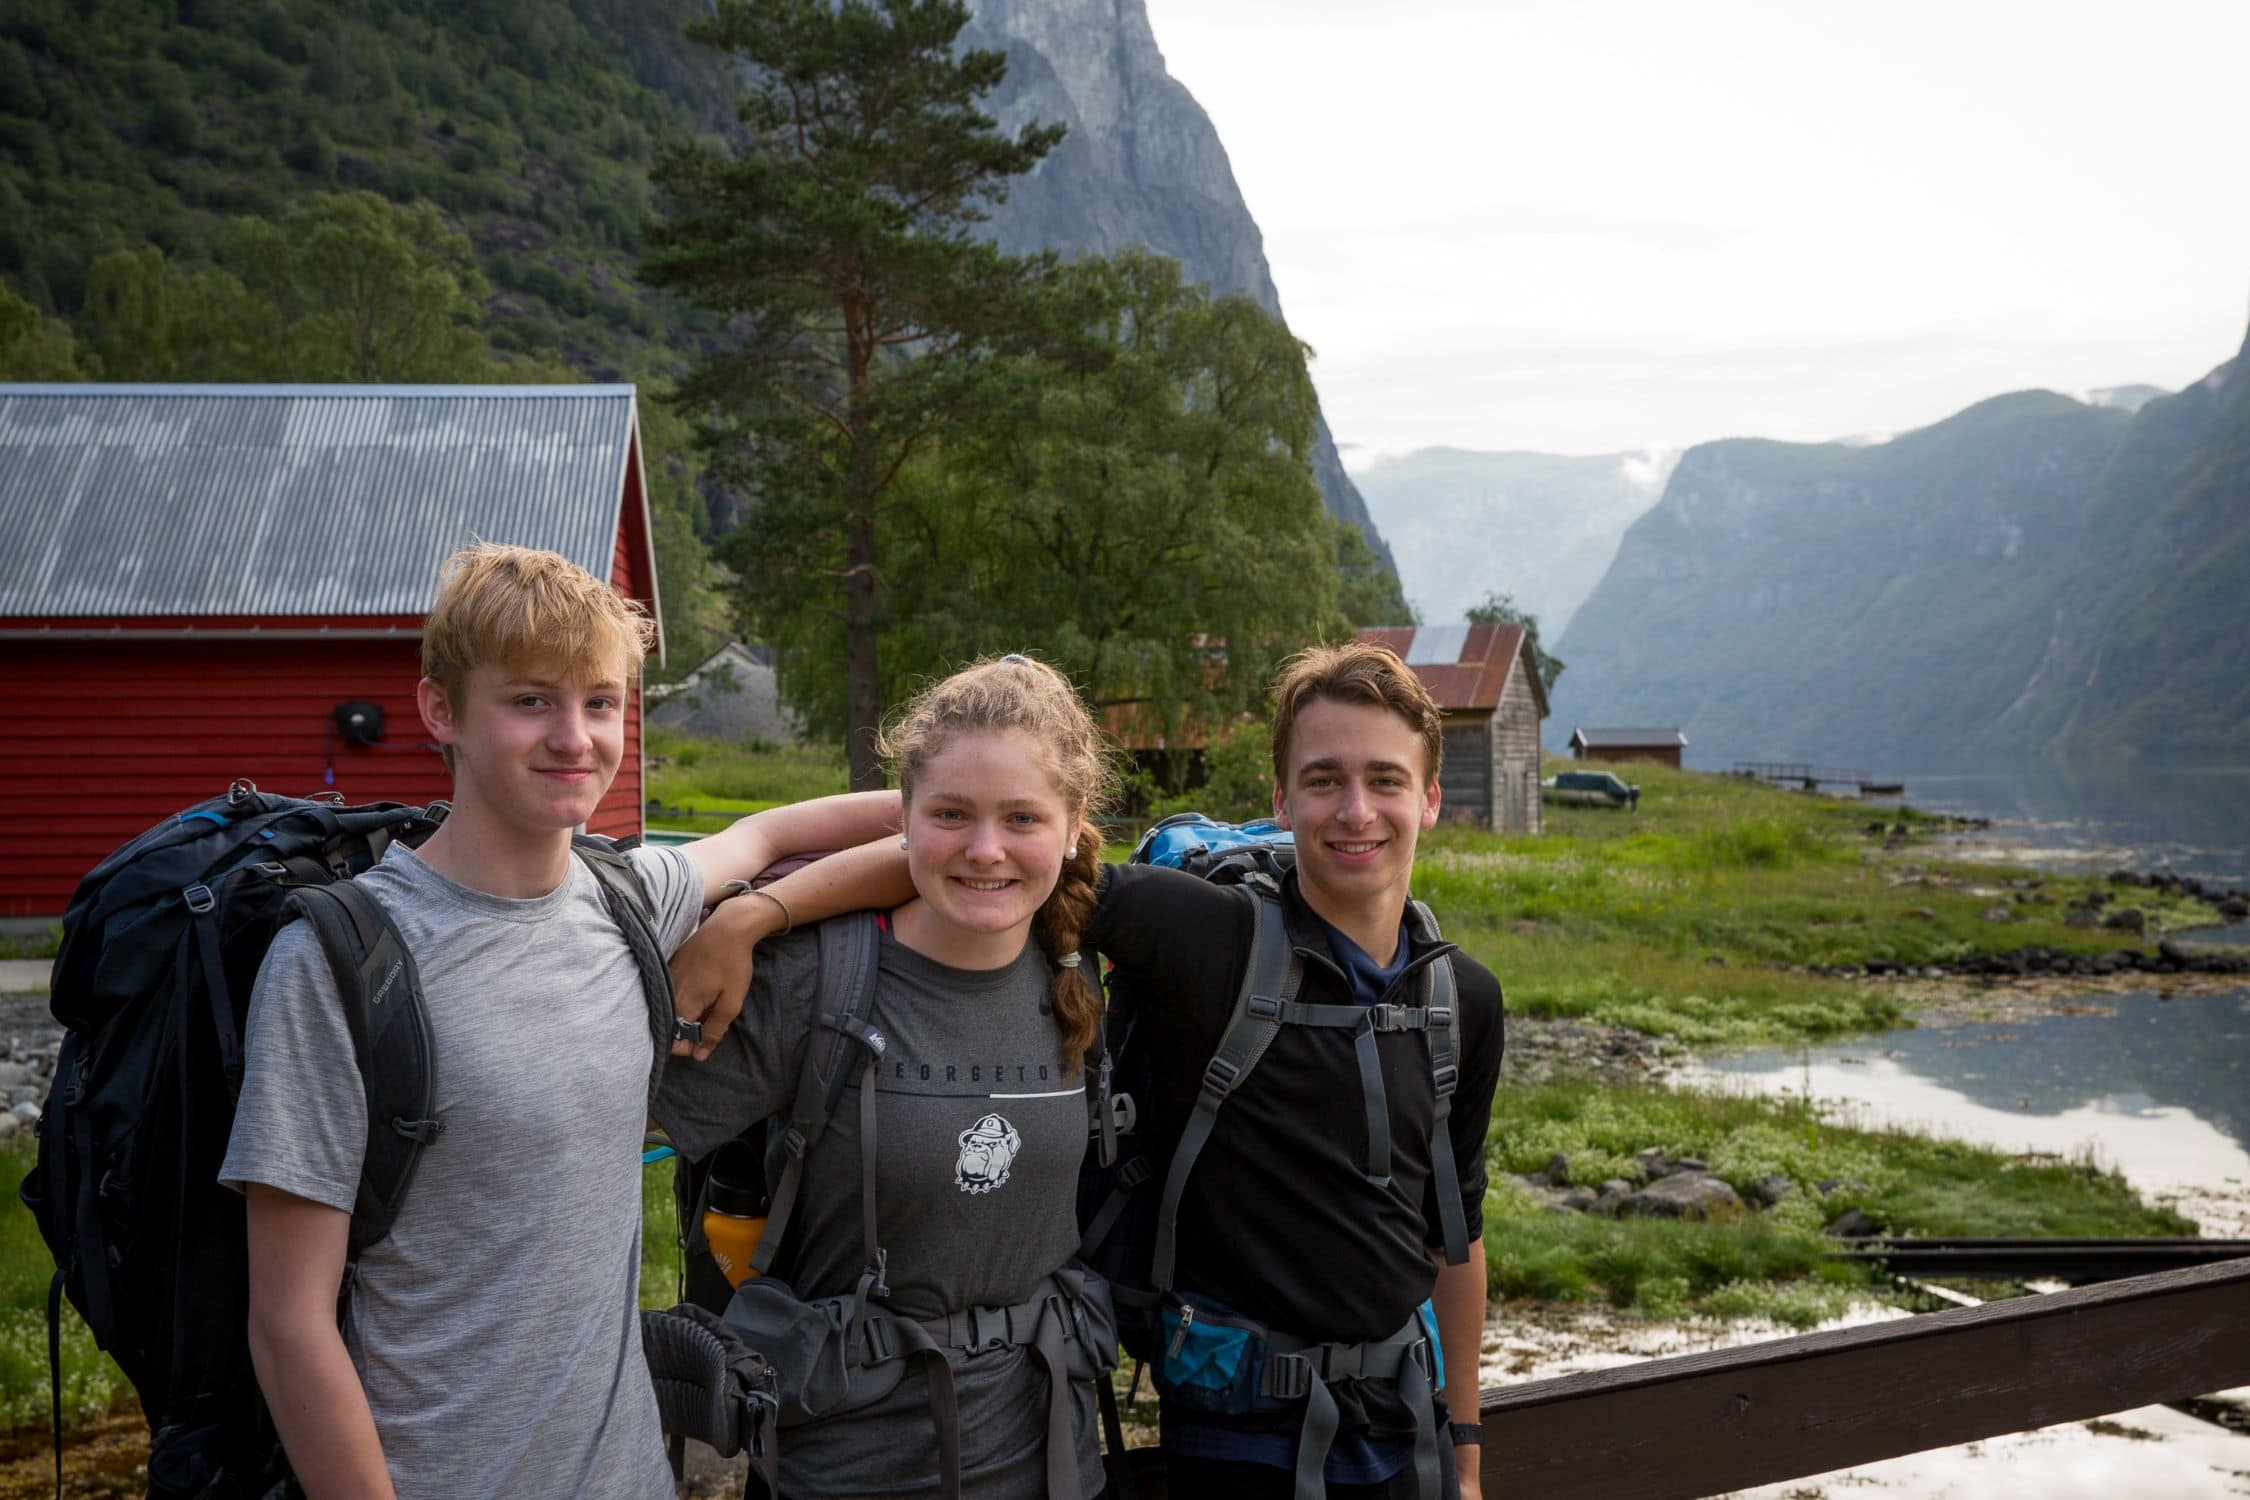 Three campers taking a quick photo before embarking on a hiking trip in Norway this summer